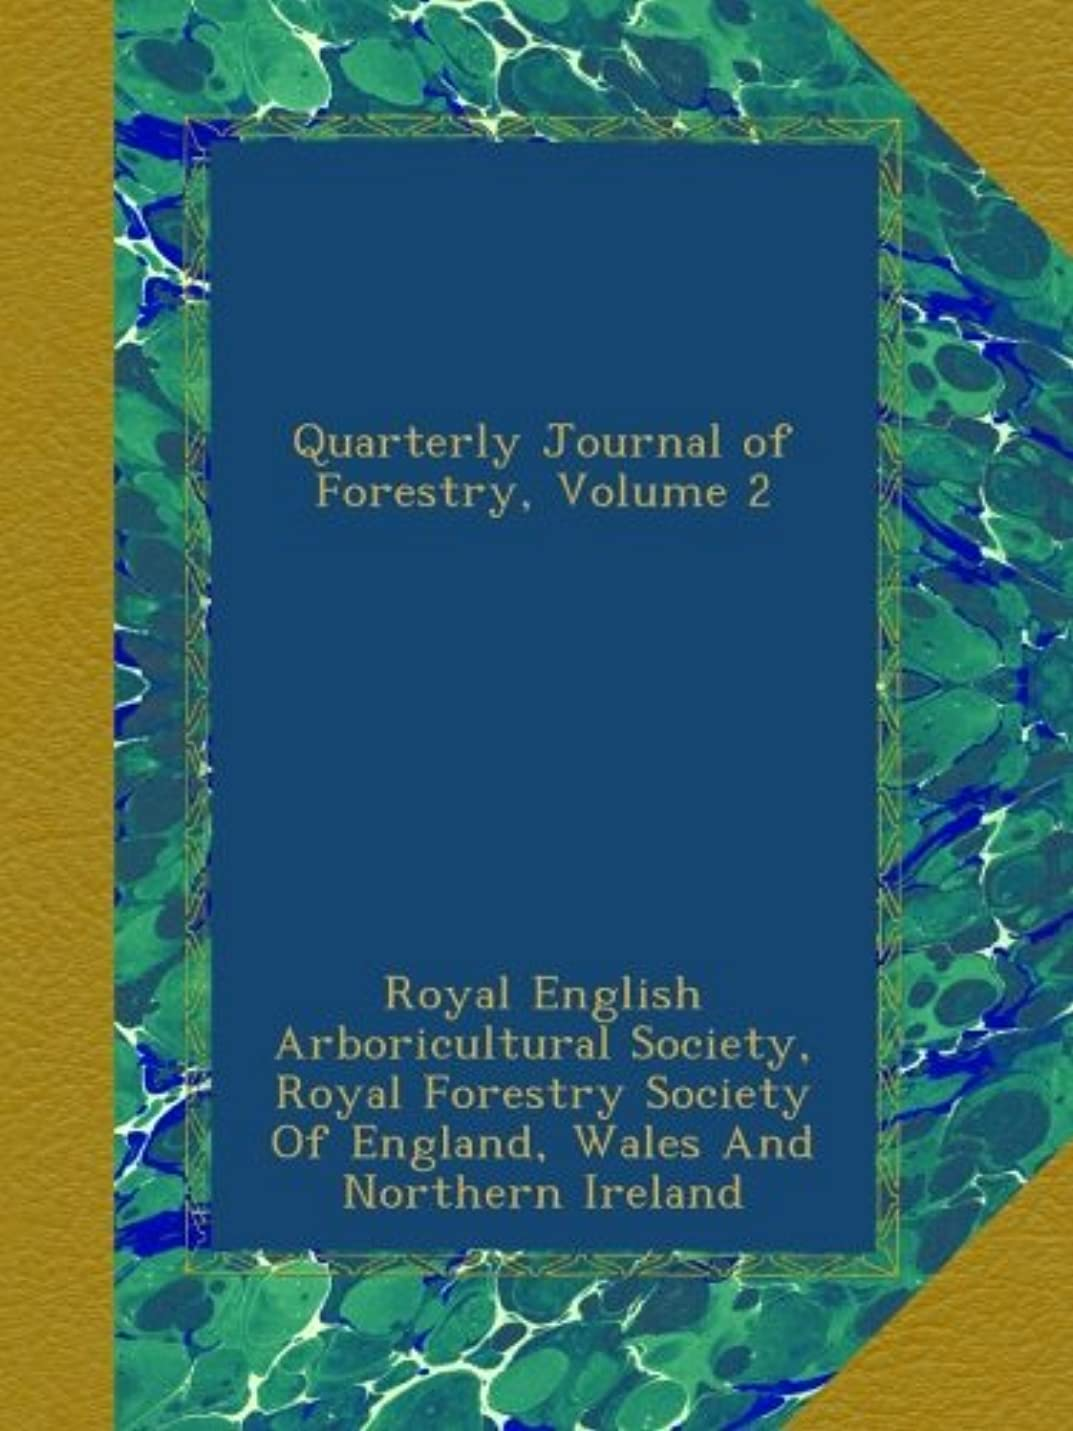 Quarterly Journal of Forestry, Volume 2